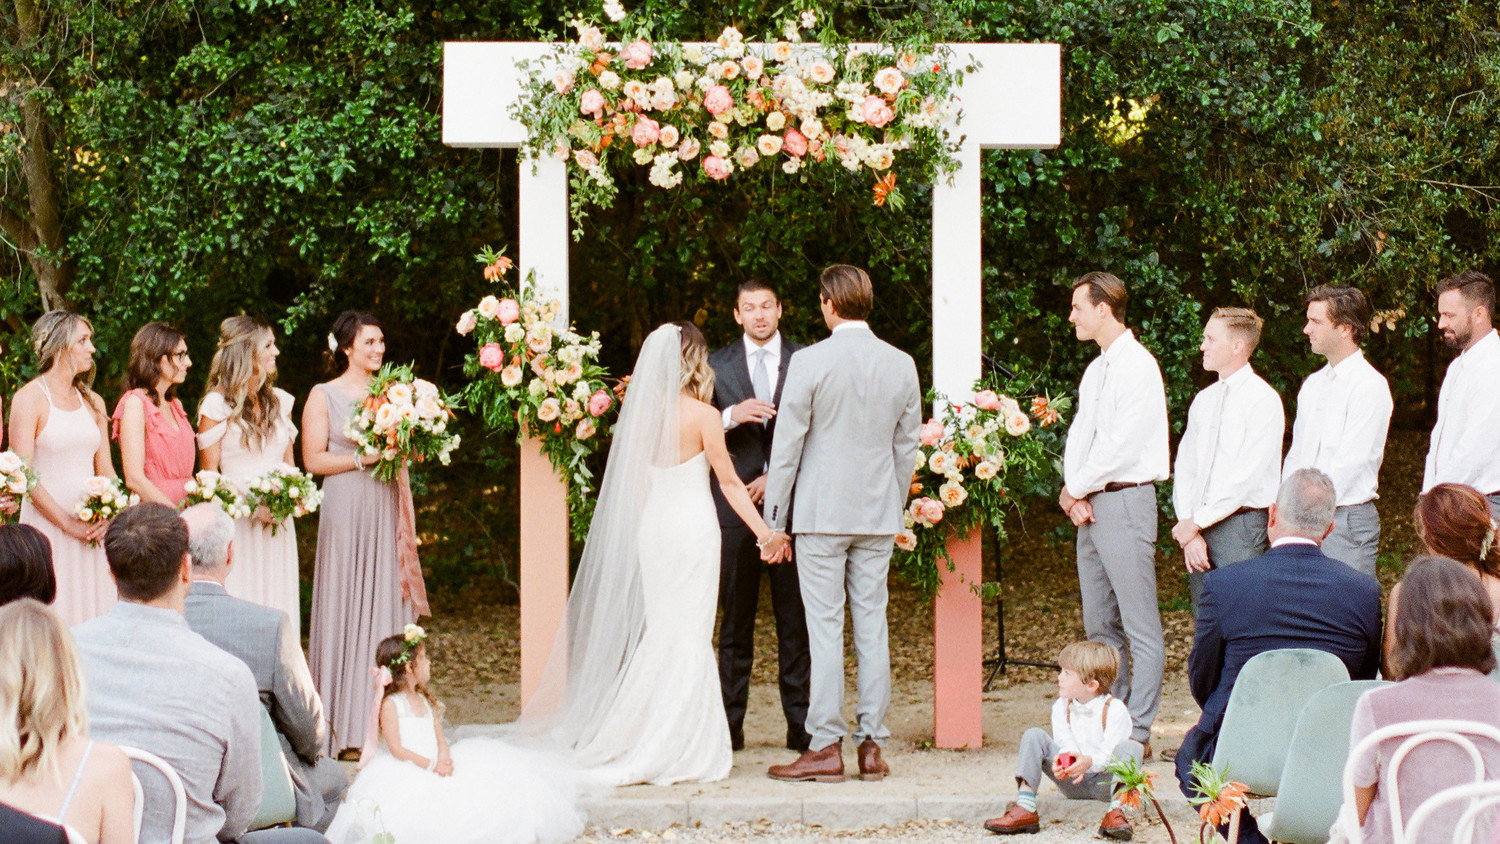 Does Your Bridal Party Need To Stand During The Ceremony